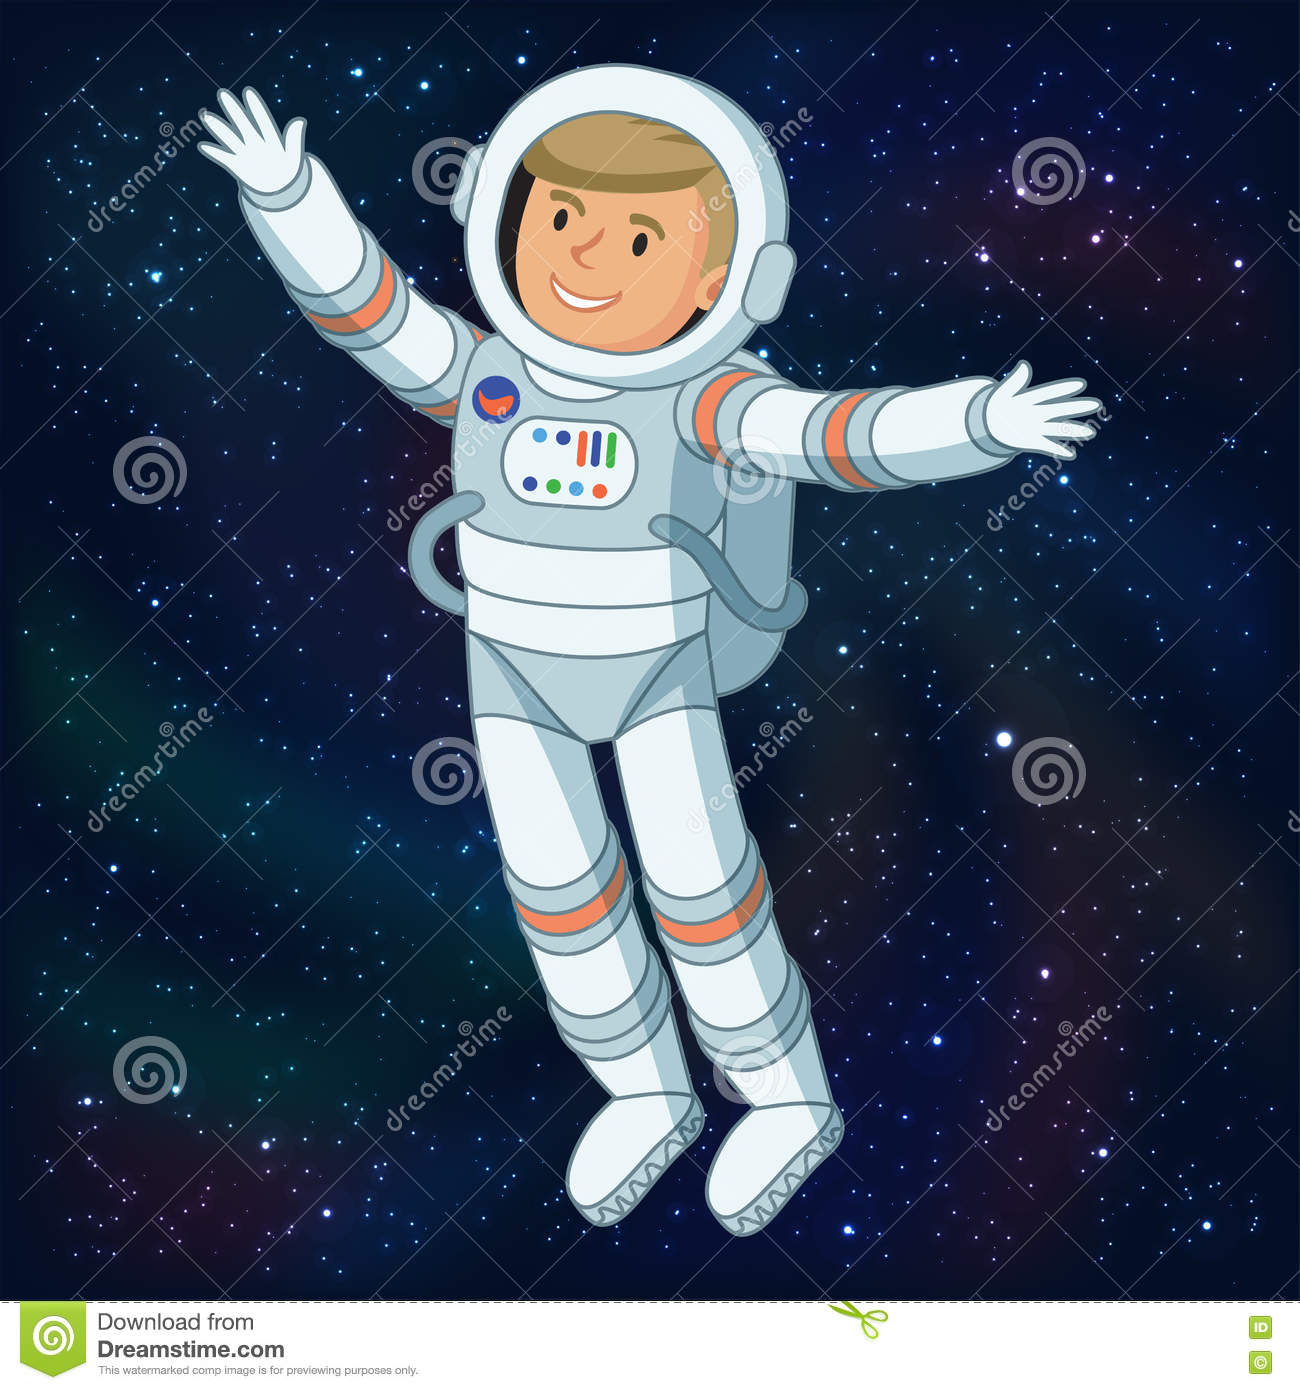 reach for the stars astronaut sloth - photo #26